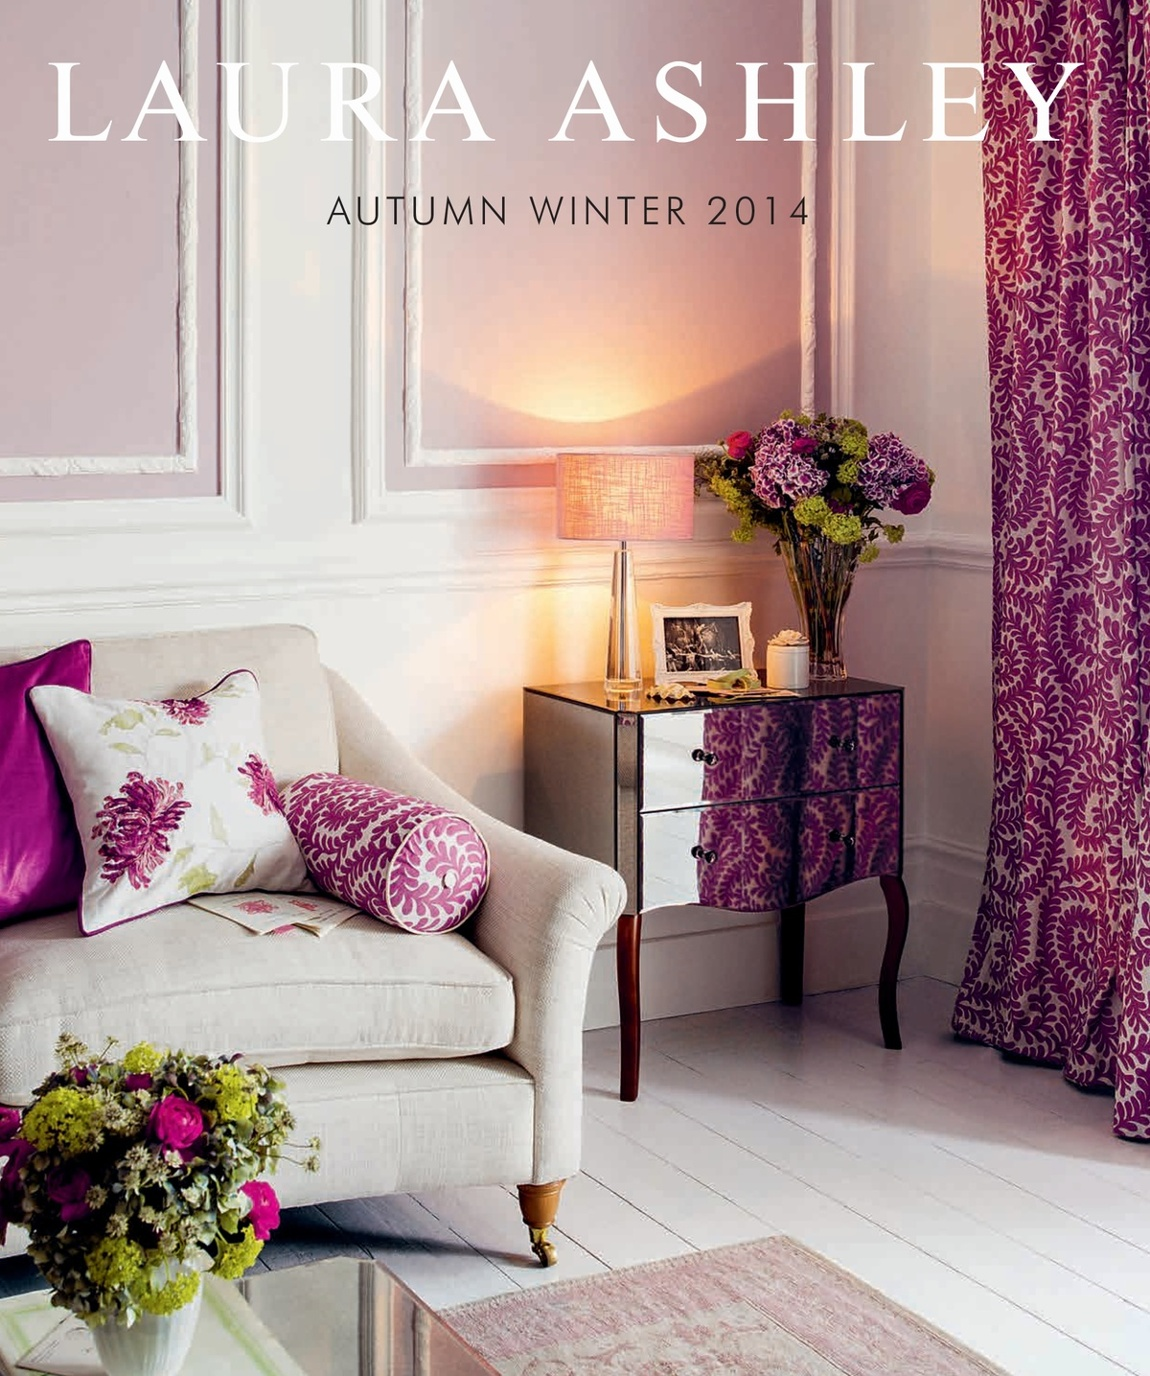 Laura Ashley AutumnWinter Catalogue - Laura ashley living room purple